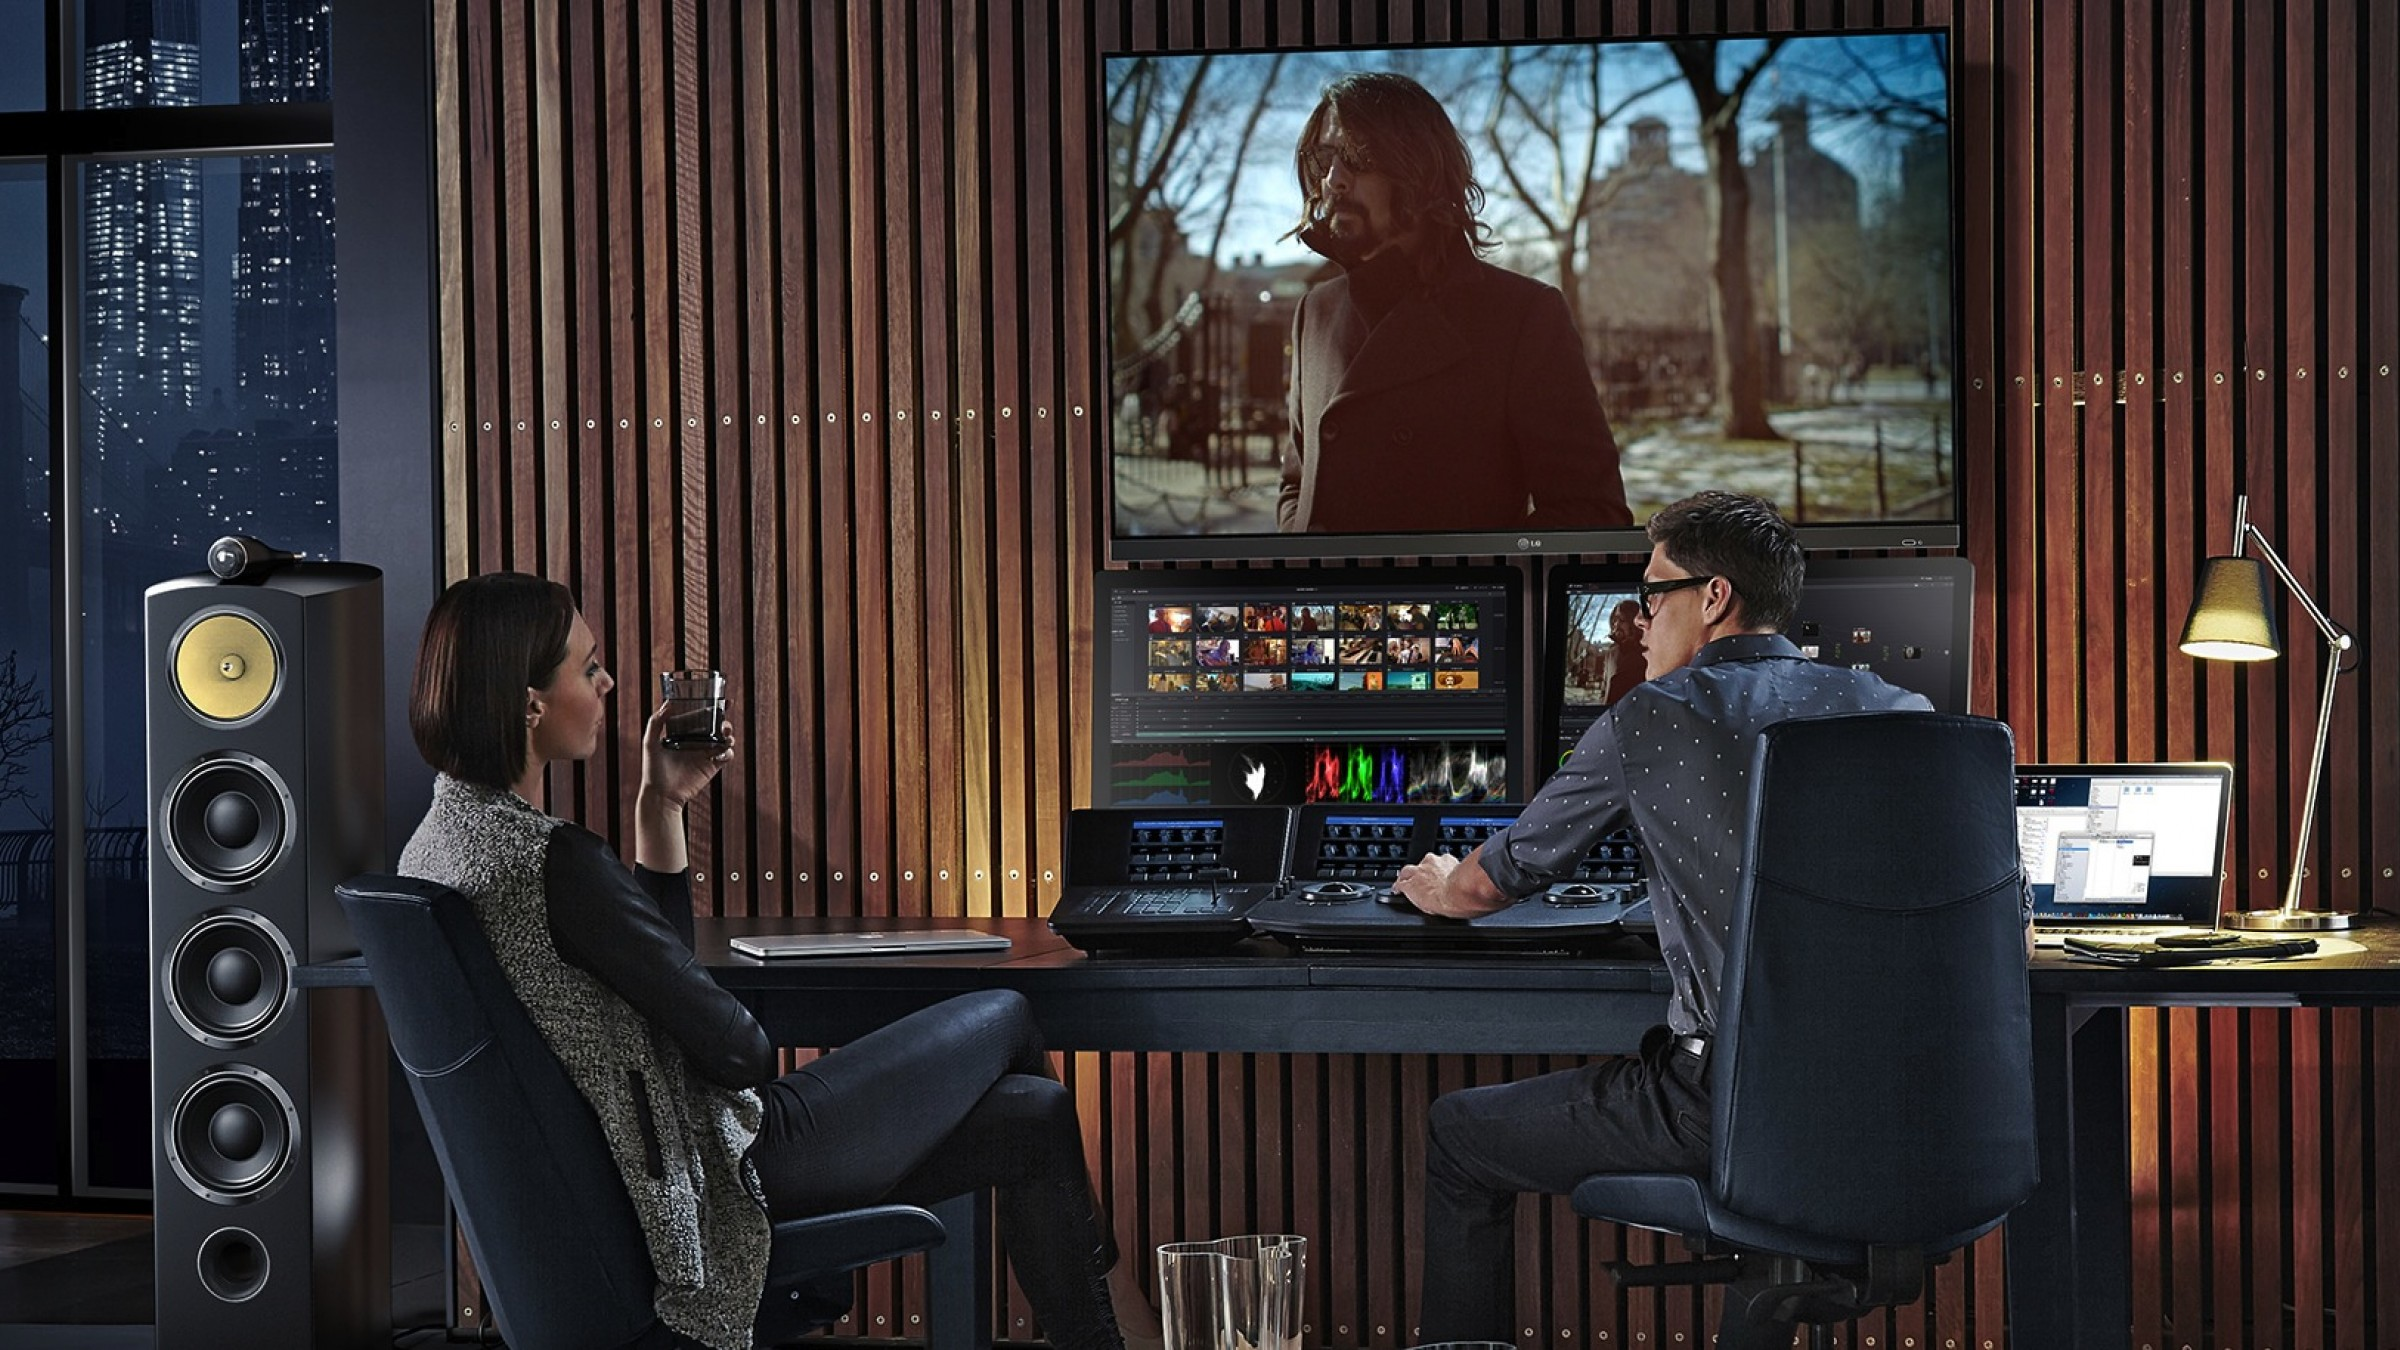 Blackmagic S Davinci Resolve 12 Is Out Of Beta Available For Download